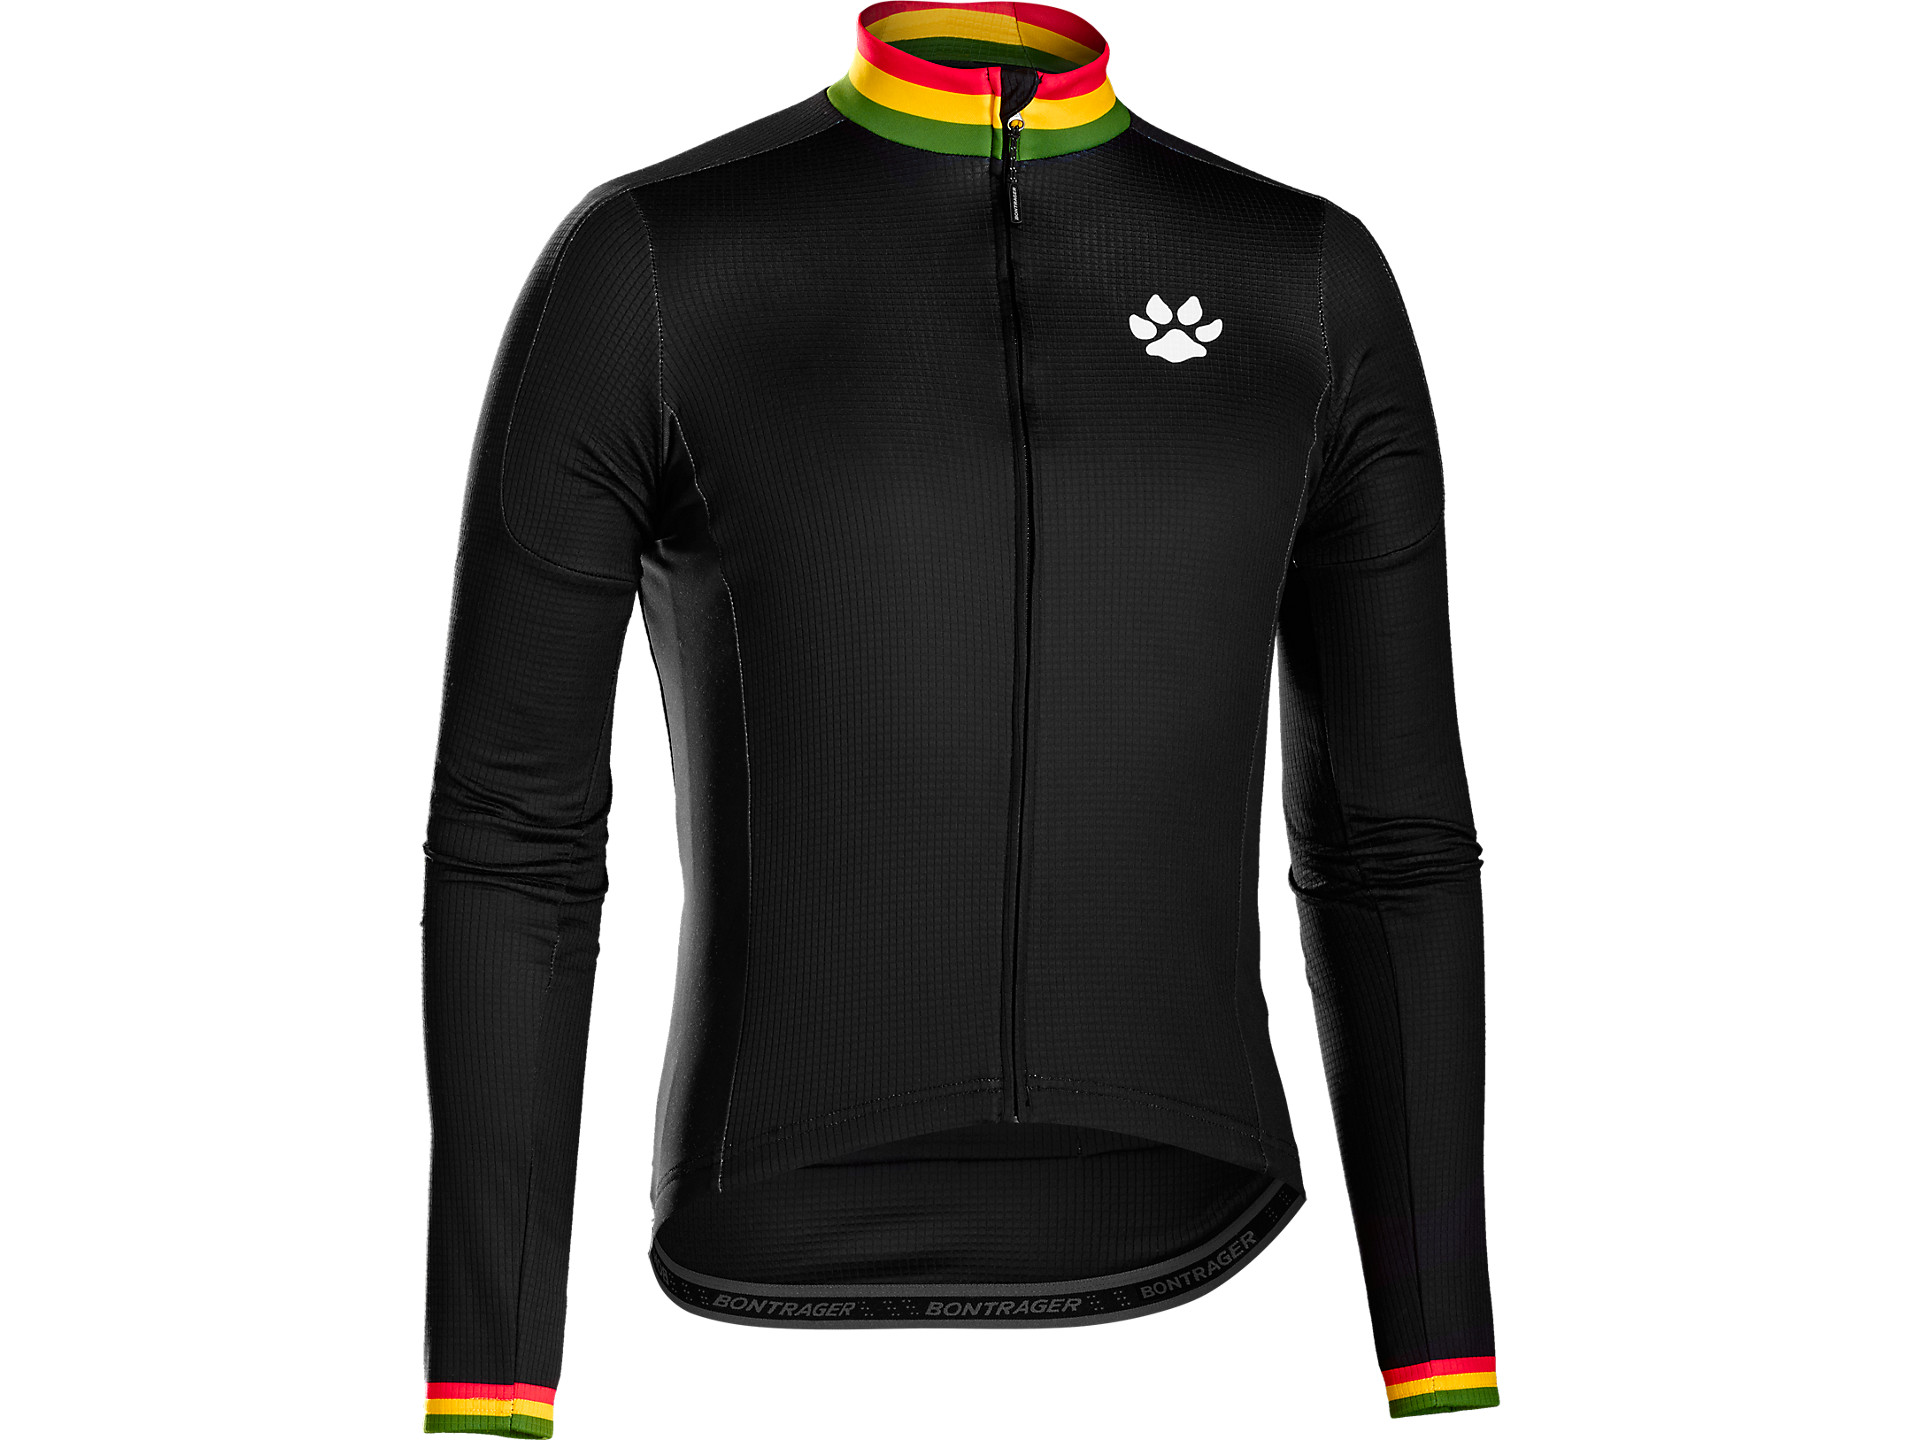 ddcaca8af Bontrager Specter Thermal Long Sleeve Cycling Jersey